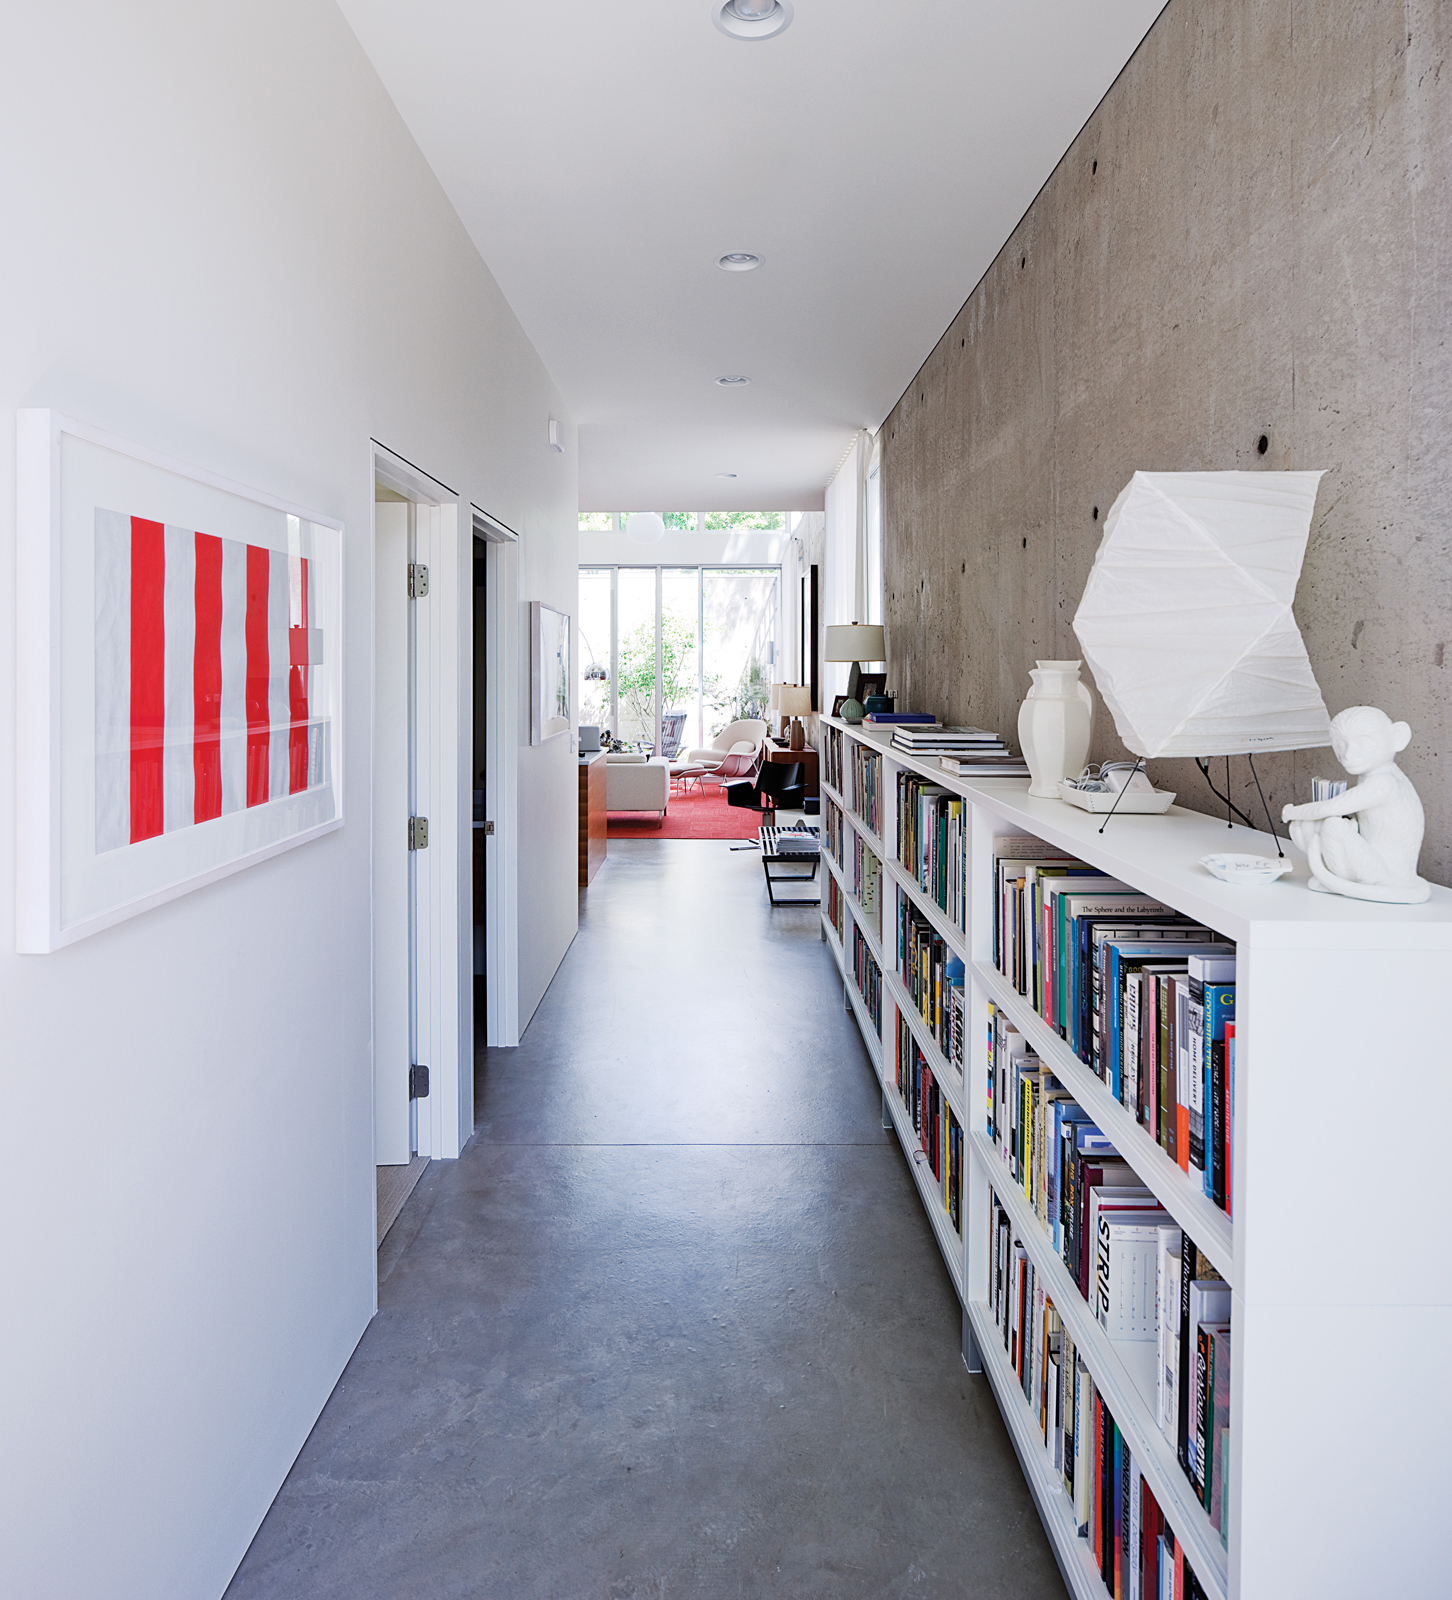 A portion of Blauvelt's 3,000-book library is archived in the long entry hall where the geometry of a Noguchi lamp plays off a pair of minimalist prints by Daniel Buren.